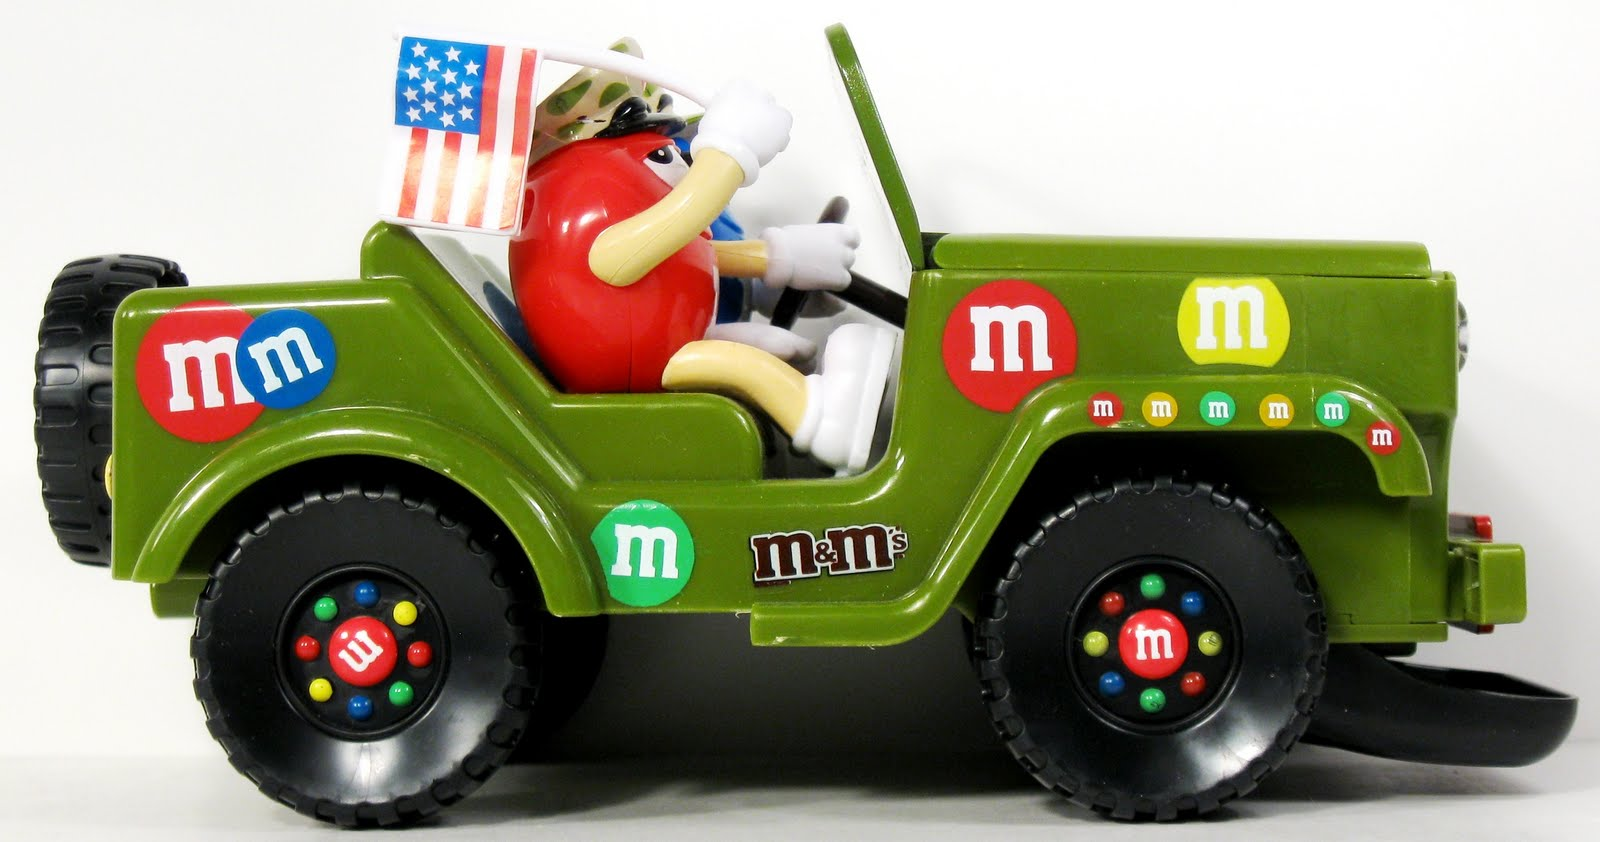 Toys And Stuff Candyrific Mms Military Vehicle Dispenser Hotwheels Vw Drag Bus Mnm Rare Yet Again The Jeep Is Peppered With Graphics Even Hubcaps Are Designed To Resemble Its A Fun About As Cartoony Toy